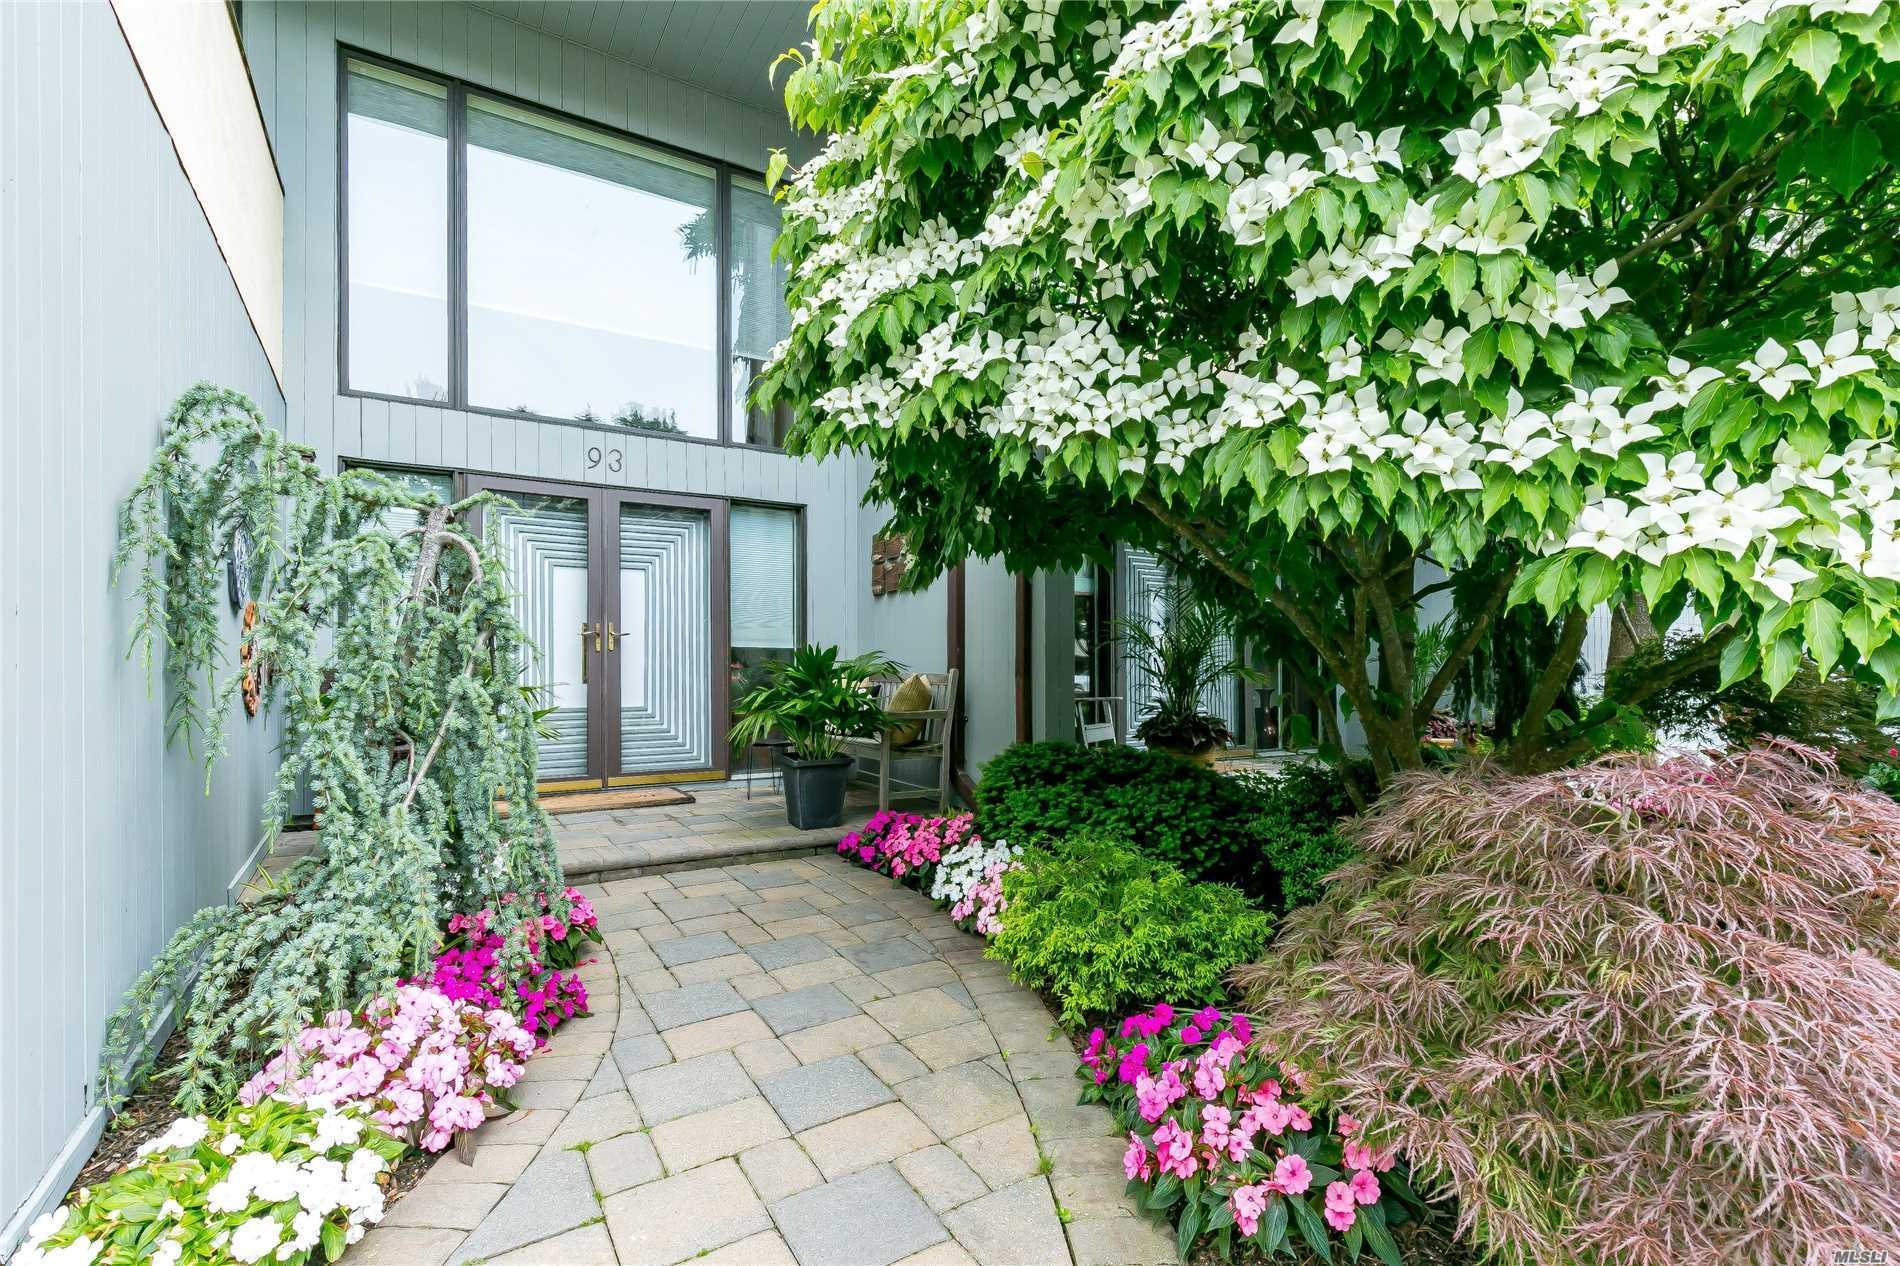 Property for sale at 93 Eagle Chase, Woodbury,  NY 11797